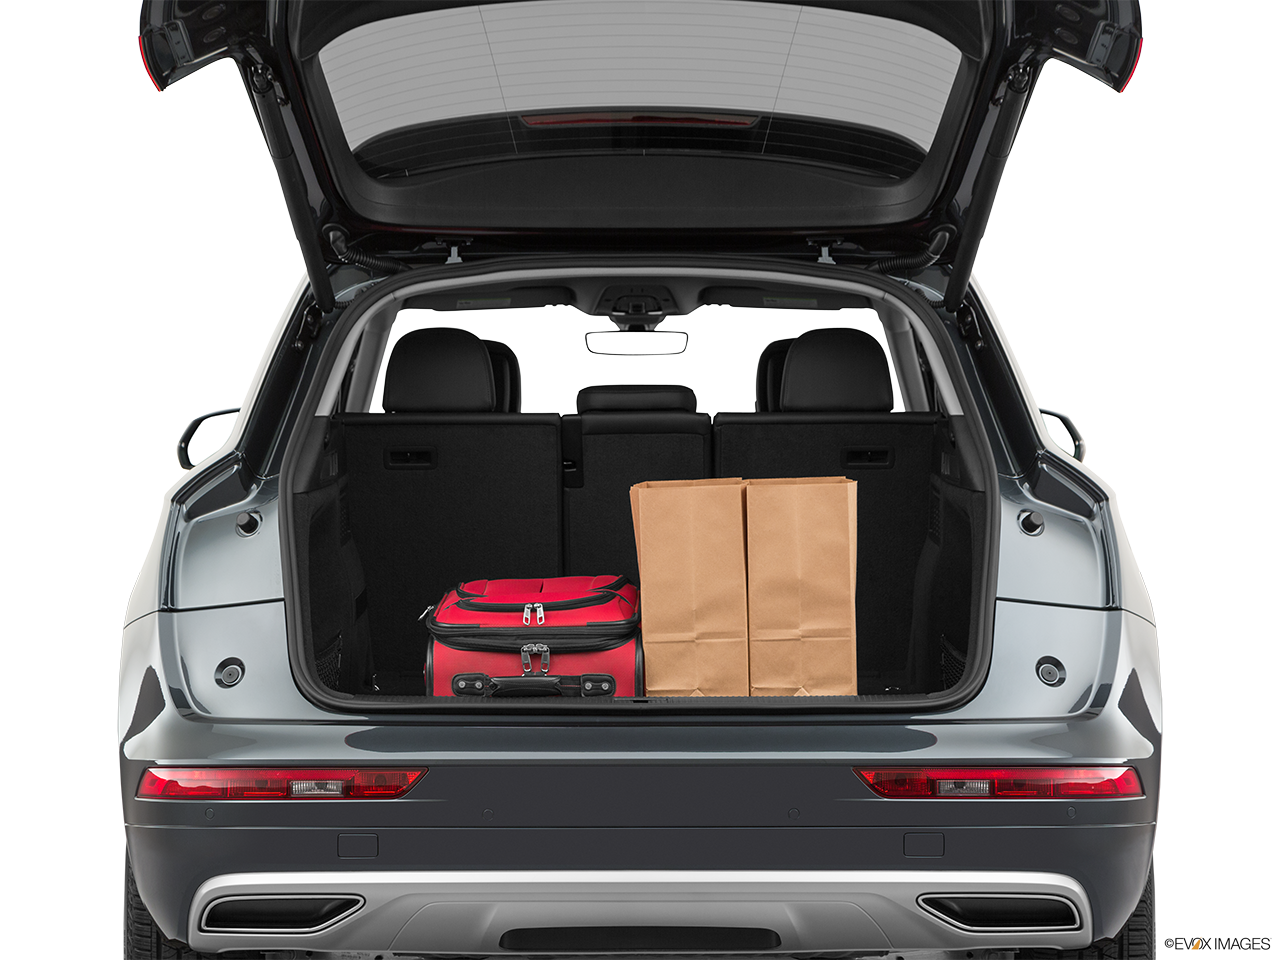 Trunk view of the Audi Q5 PHEV